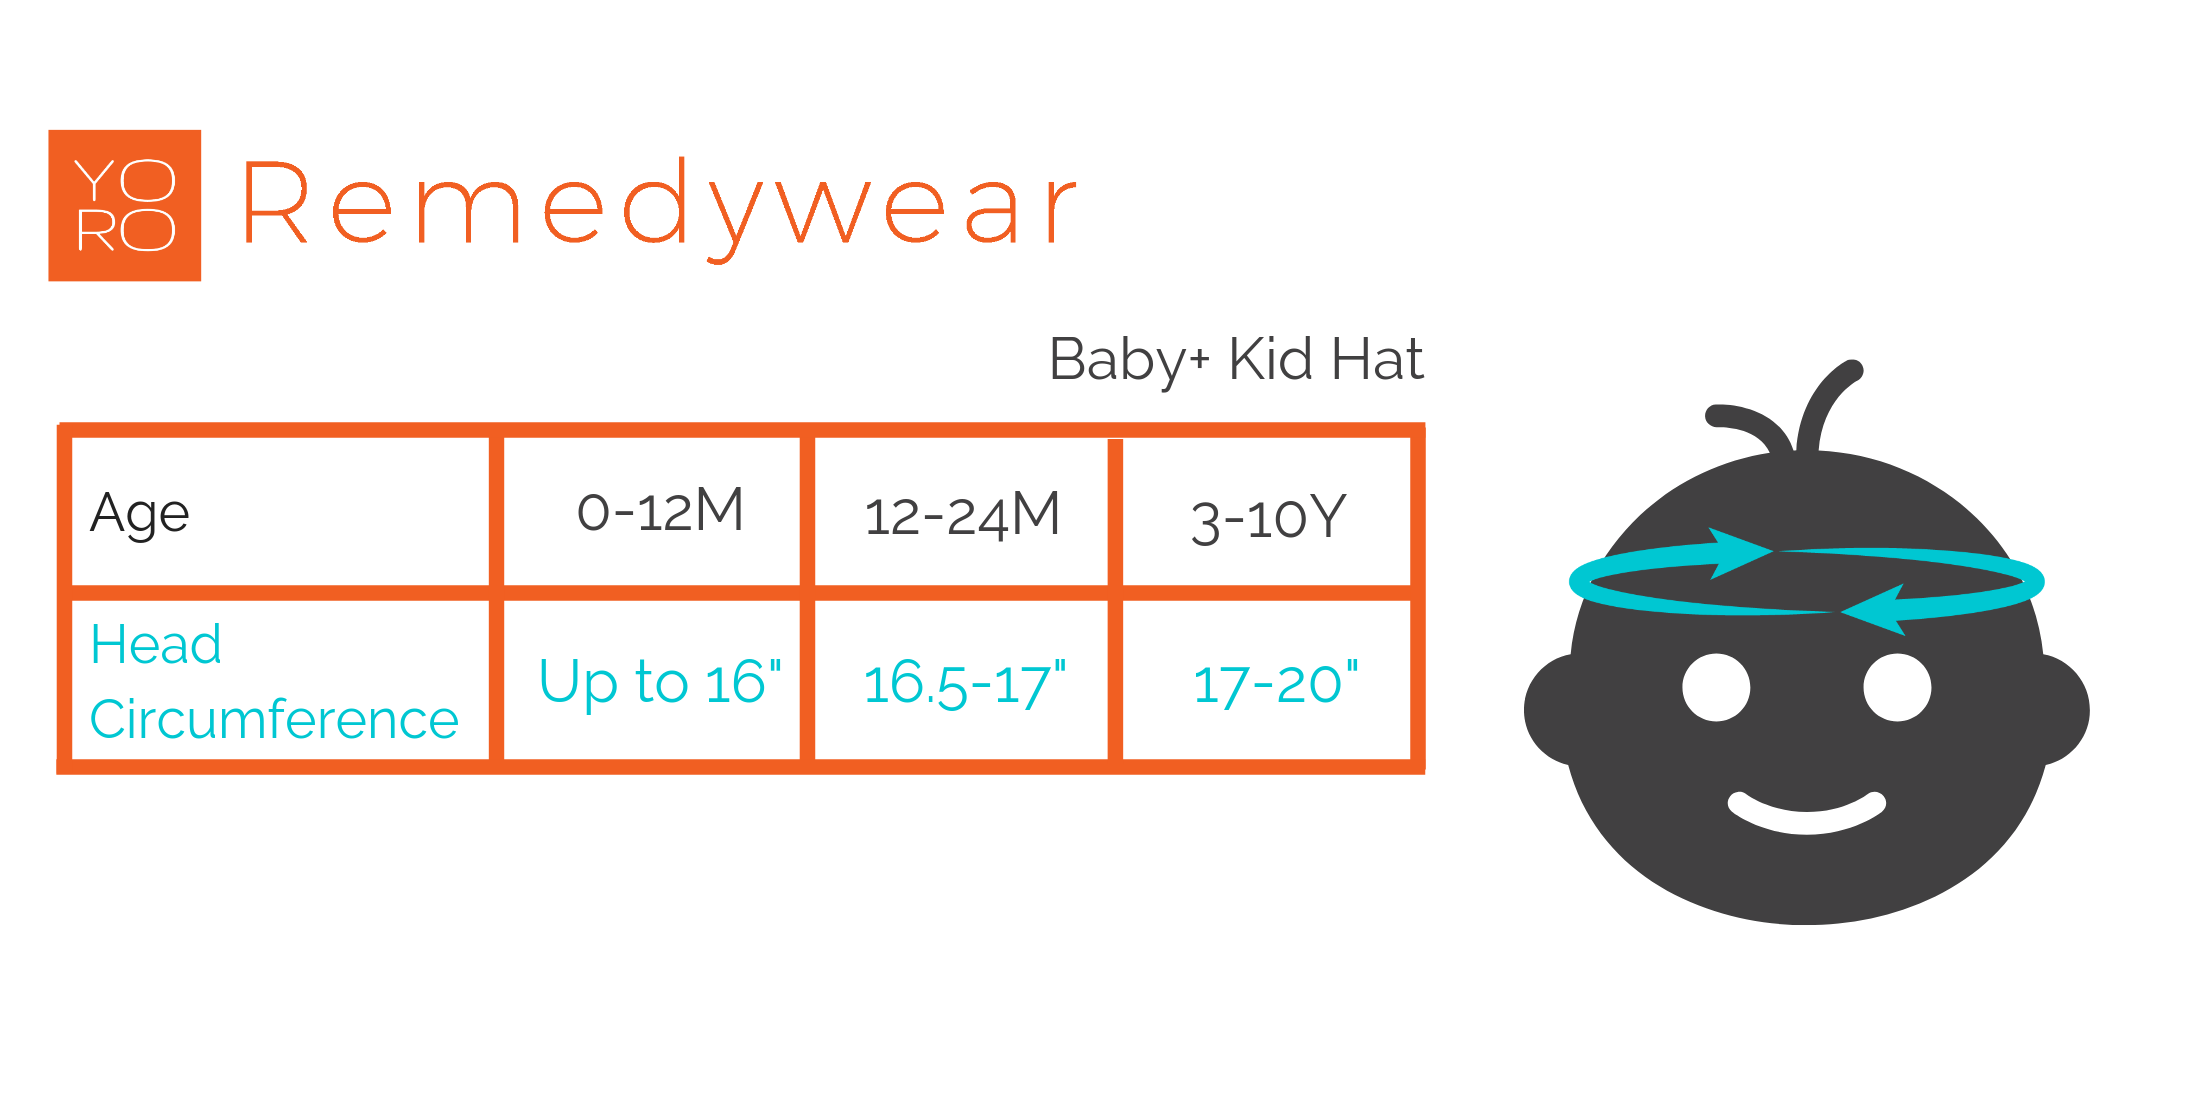 remedywear baby hat